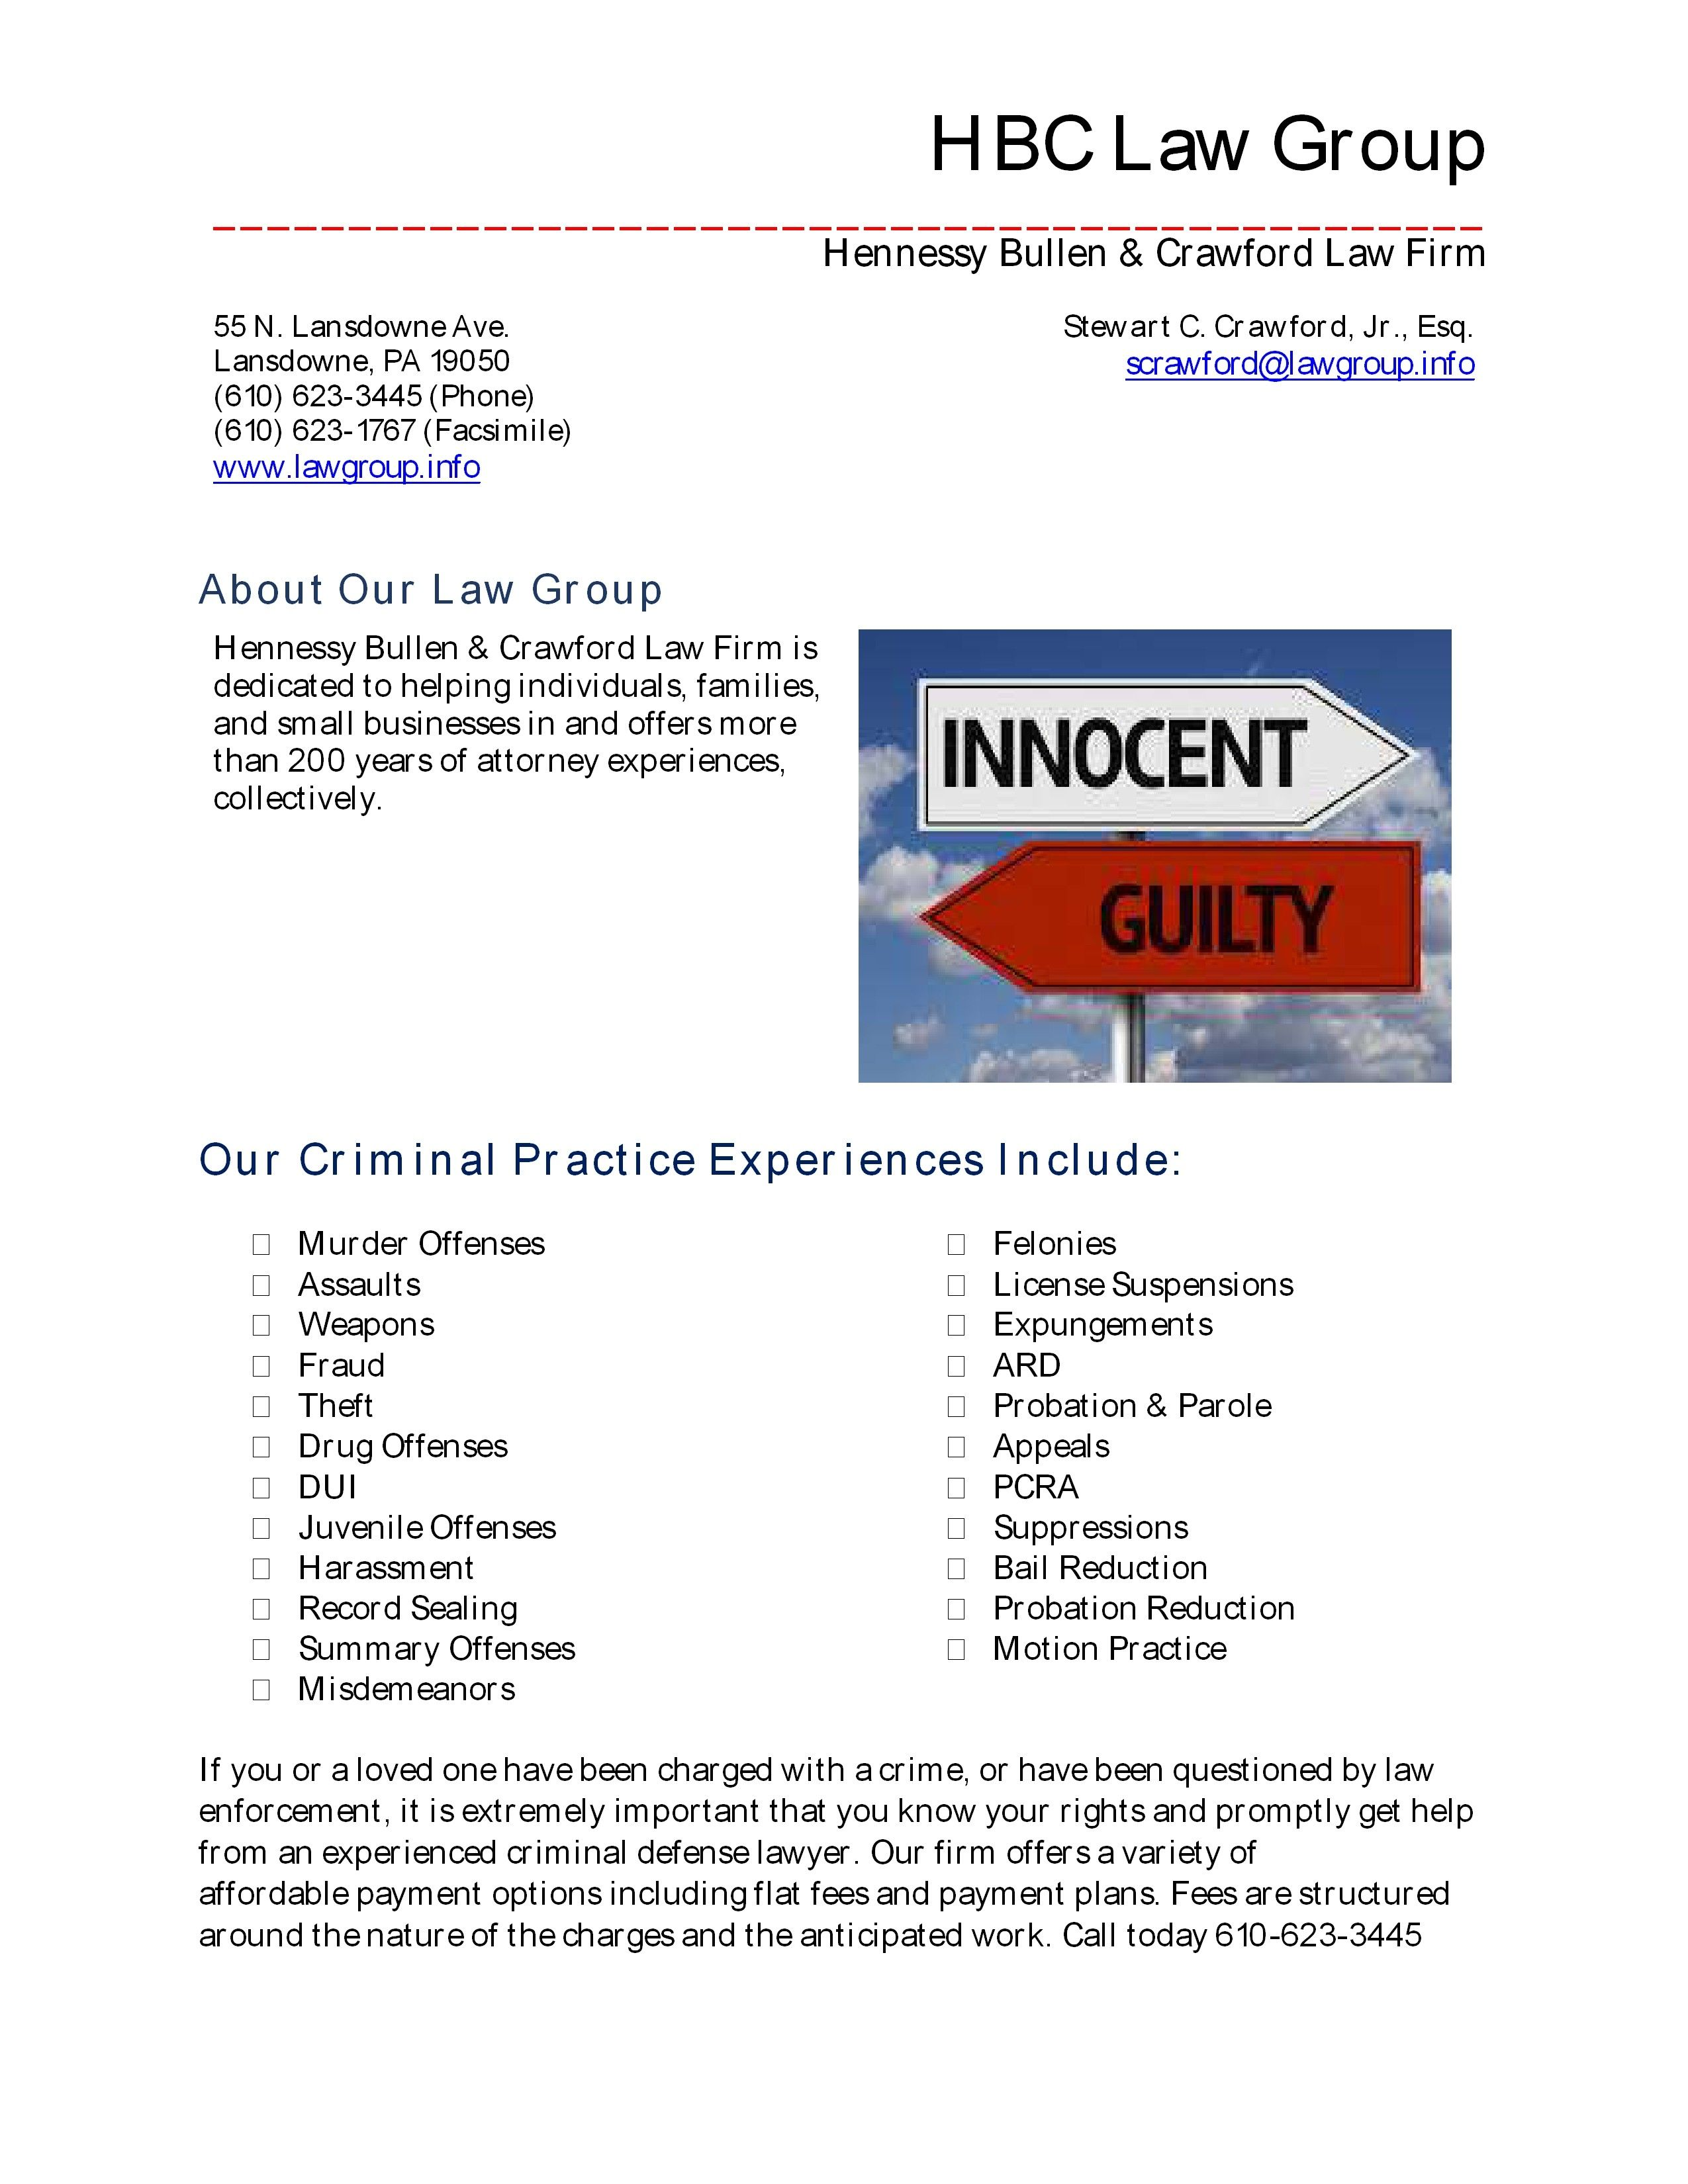 Hennessy Bullen & Crawford Law Firm, Experienced criminal